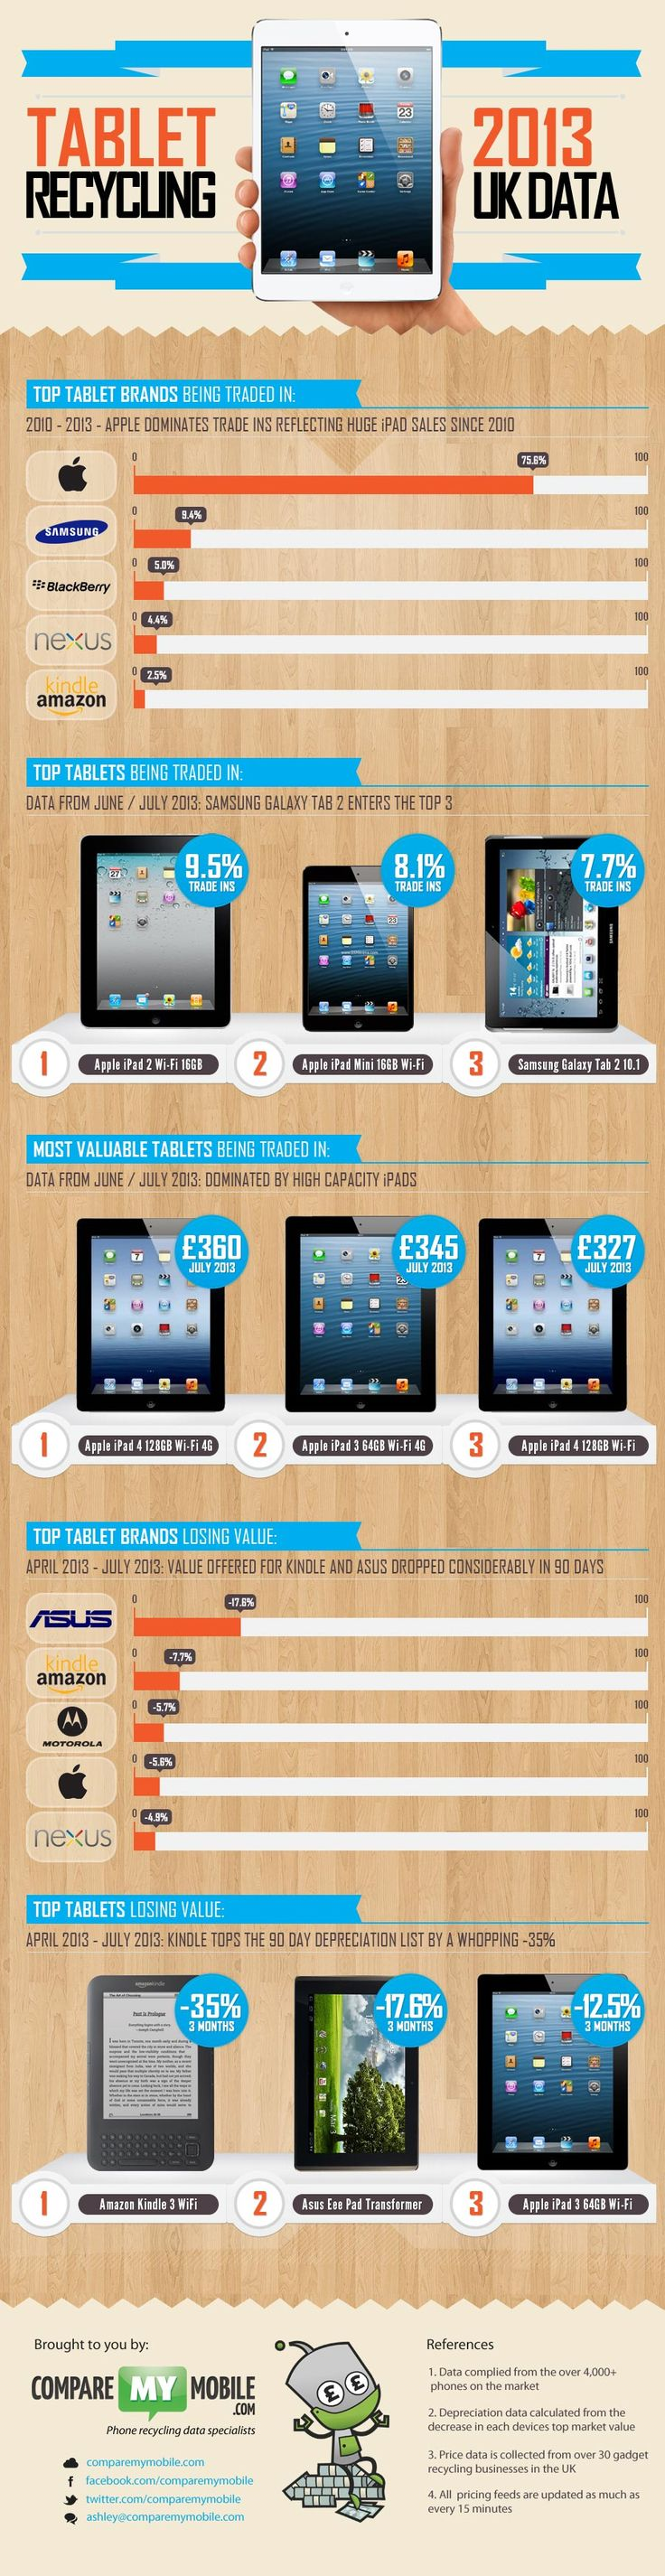 Tablet Recycling Stats - tablet trade-ins, most valuable tablets and iPads, top tablet brands being traded-in, top tablets losing resell value  #ipad #infographic #tablet